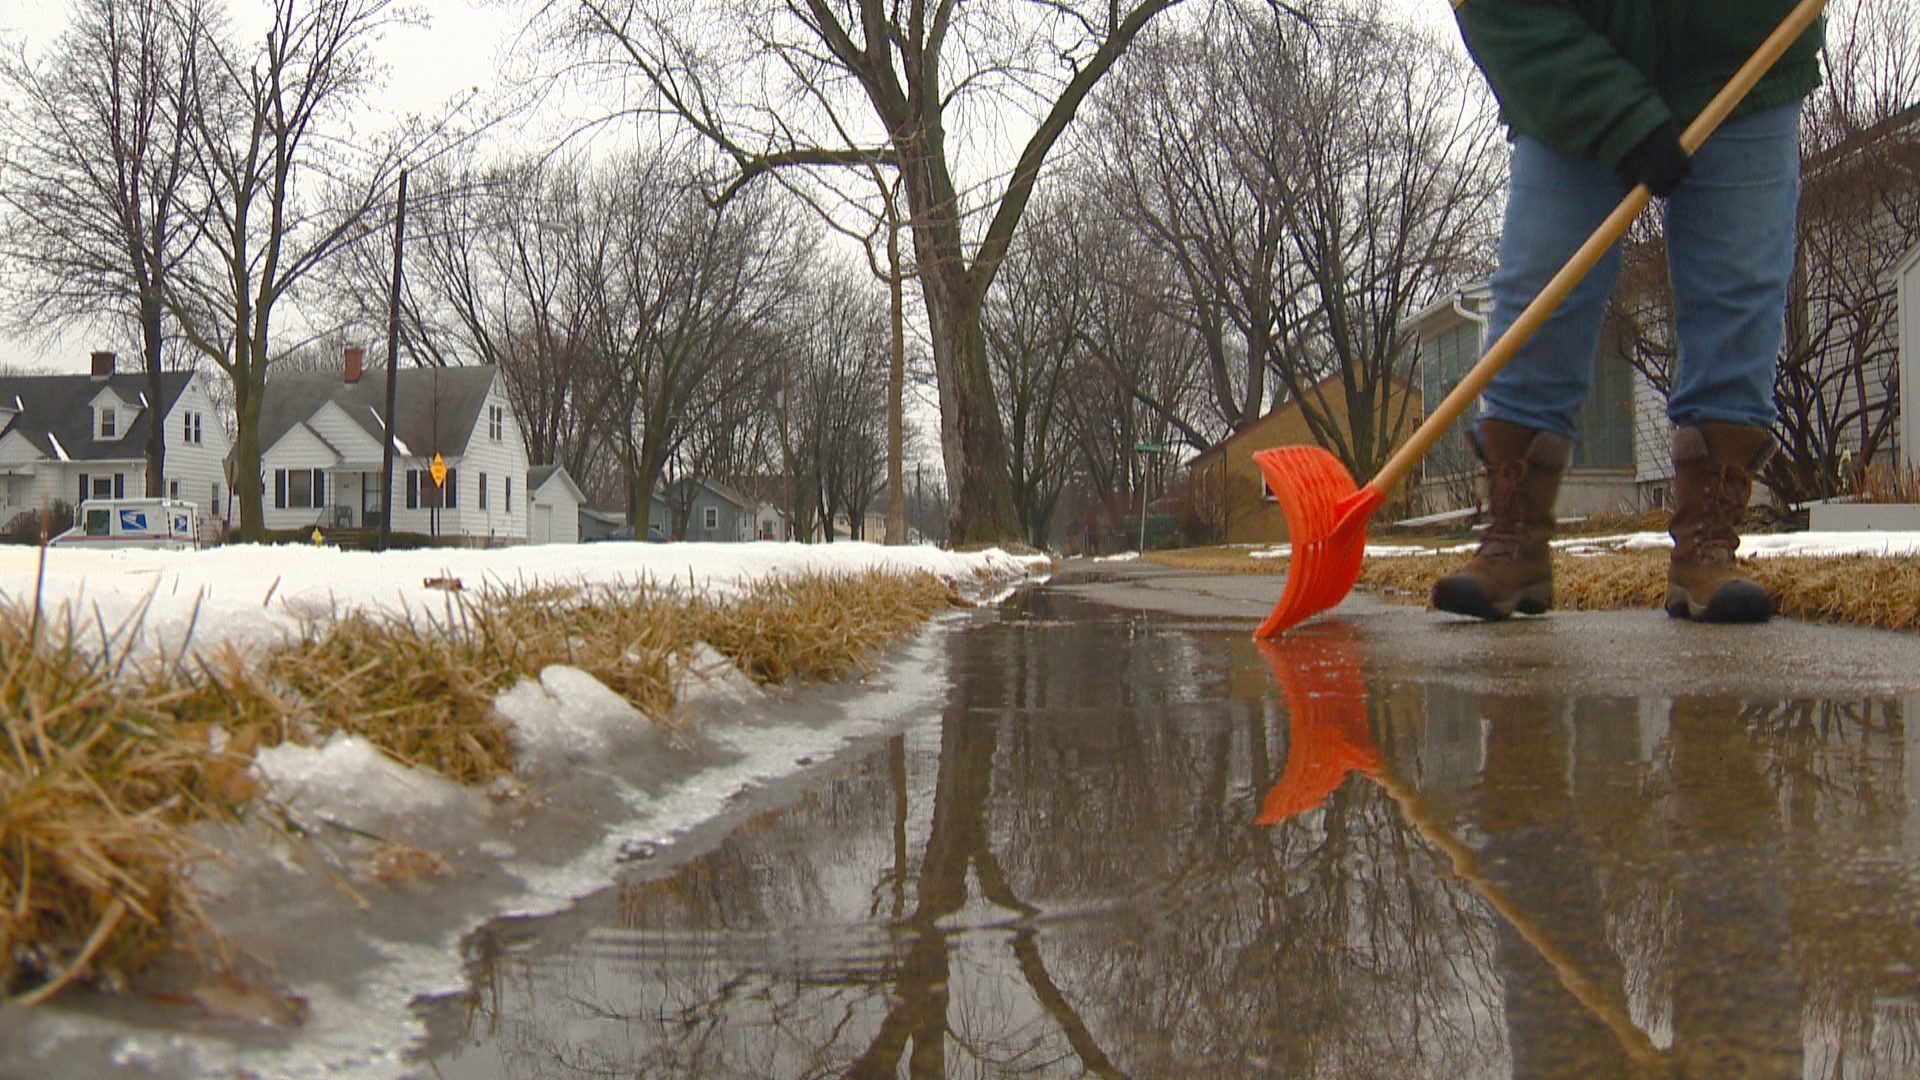 Aftermath of Winter Storm Brooks, February 20, 2018. (WLUK)